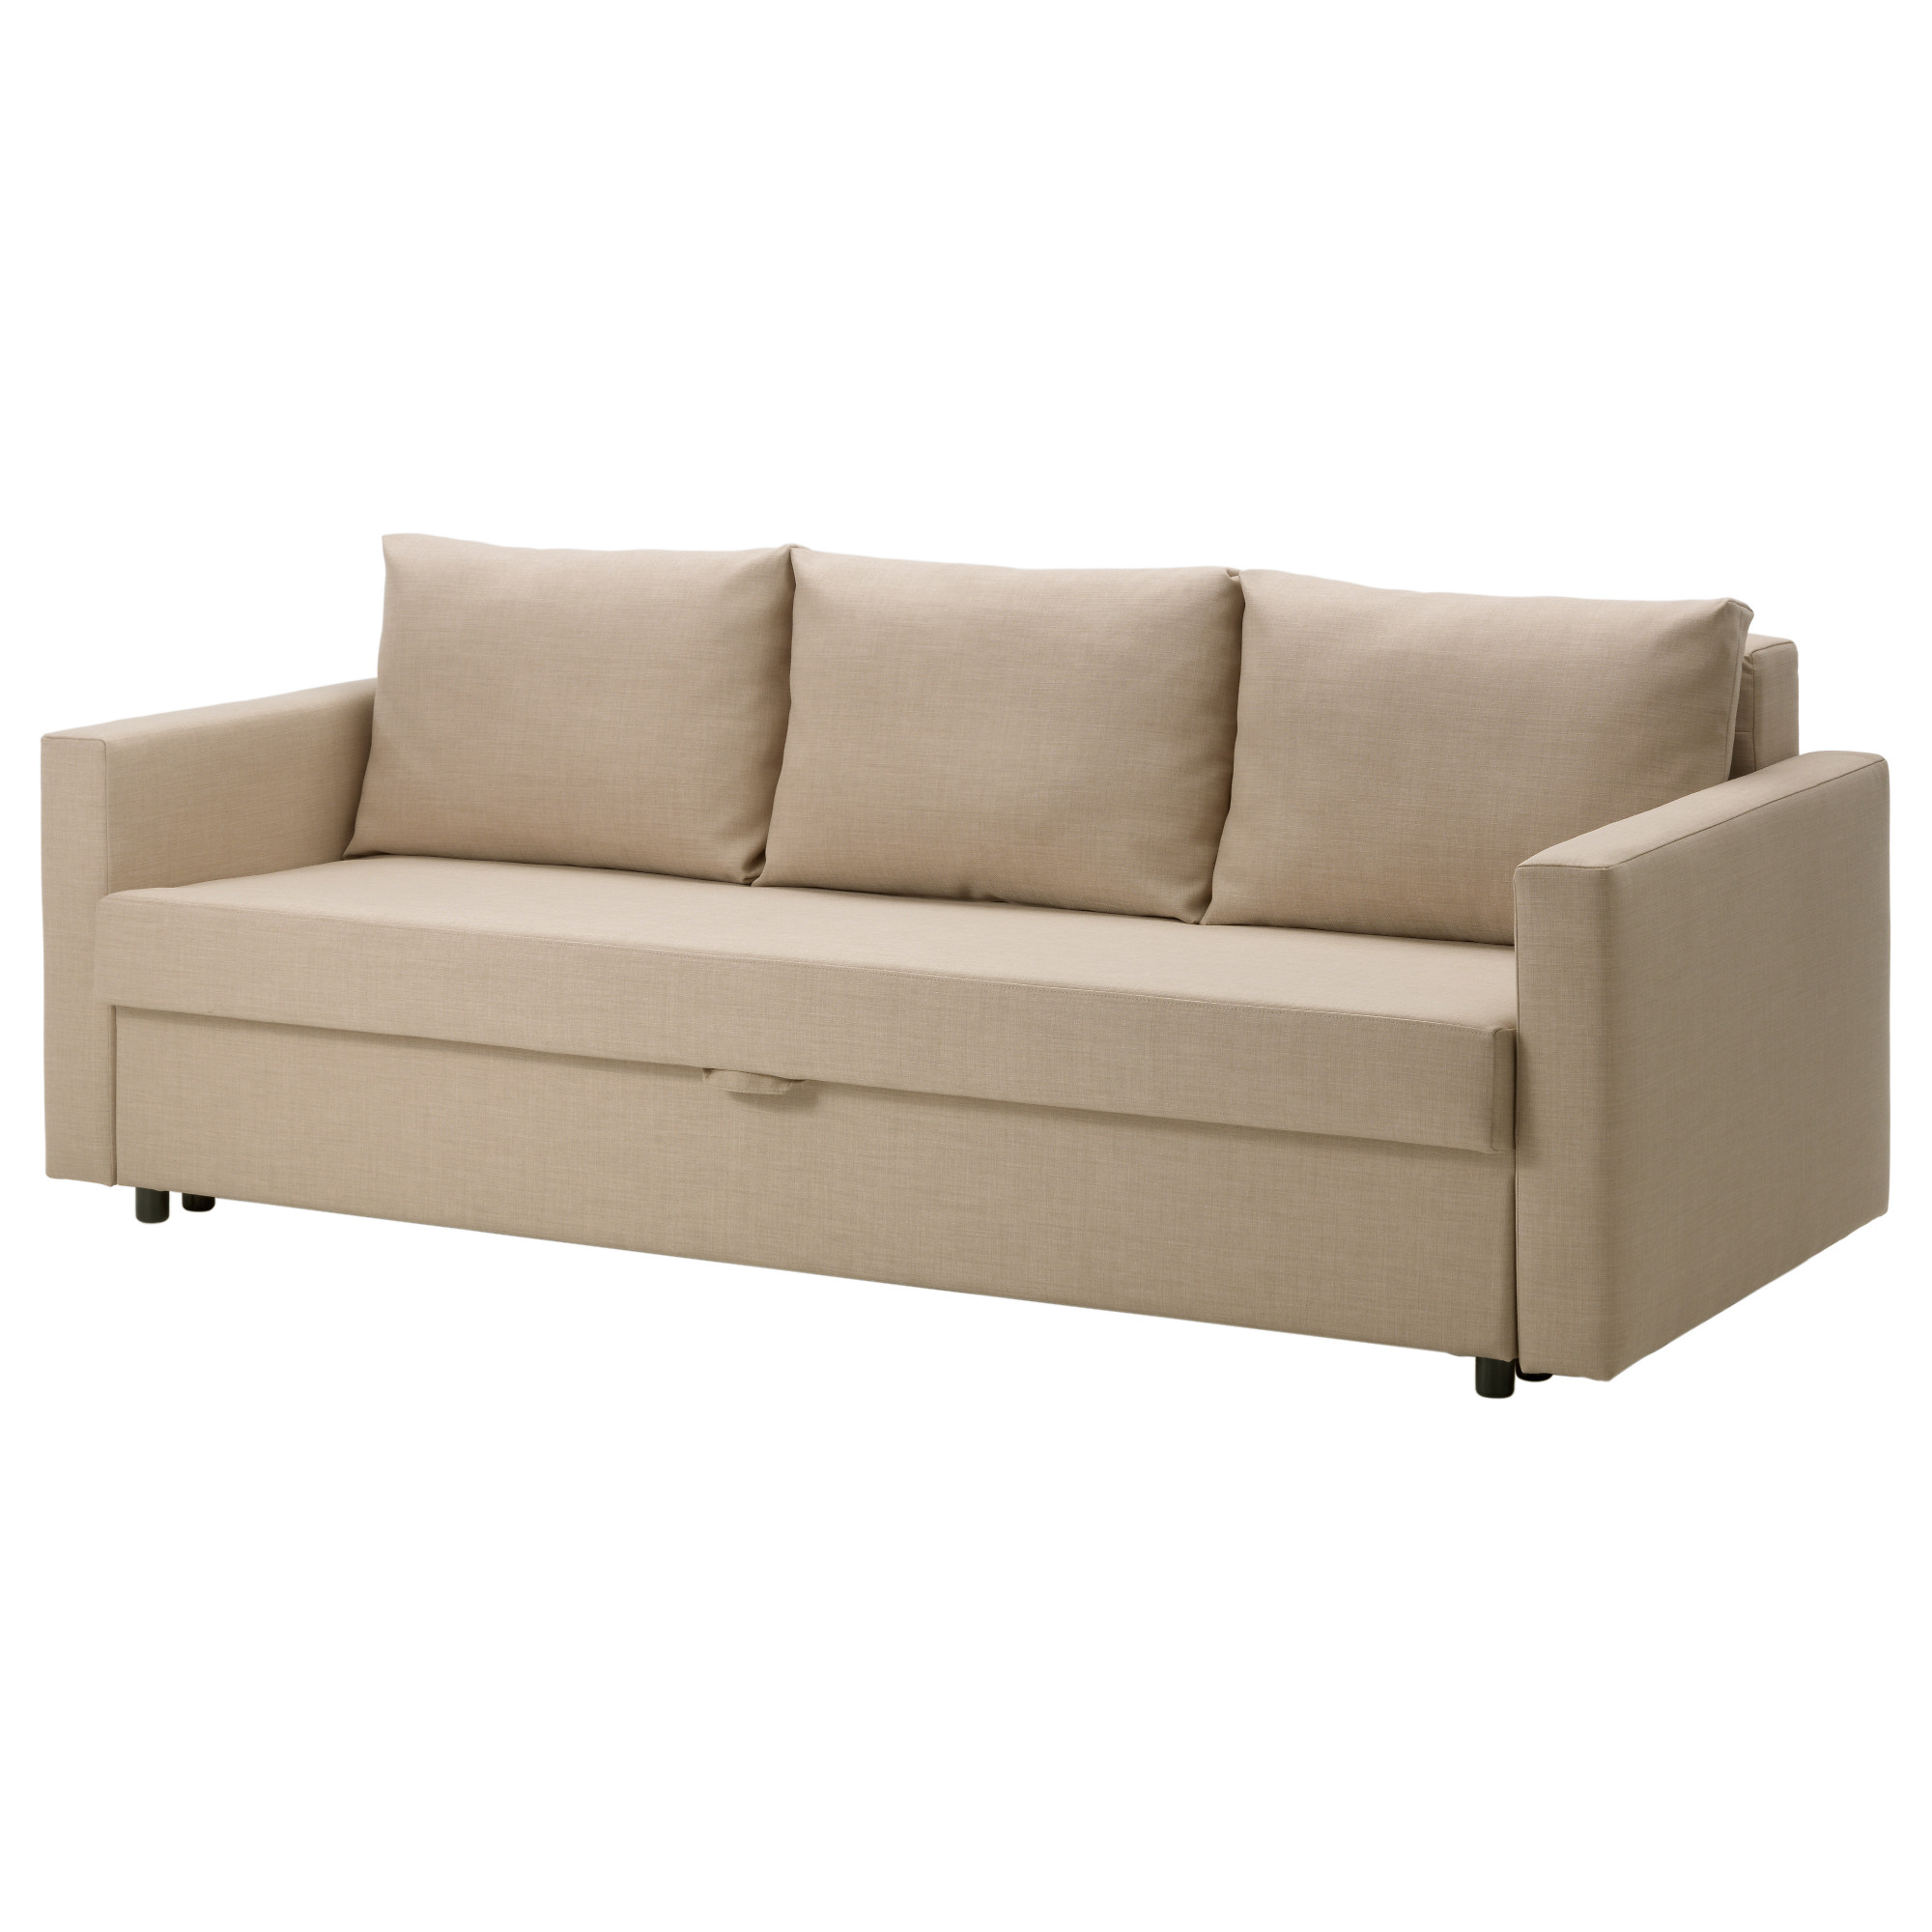 Moheda Sofa Bed | Chair and A Half Ikea | Small Sectional Sleeper Sofa